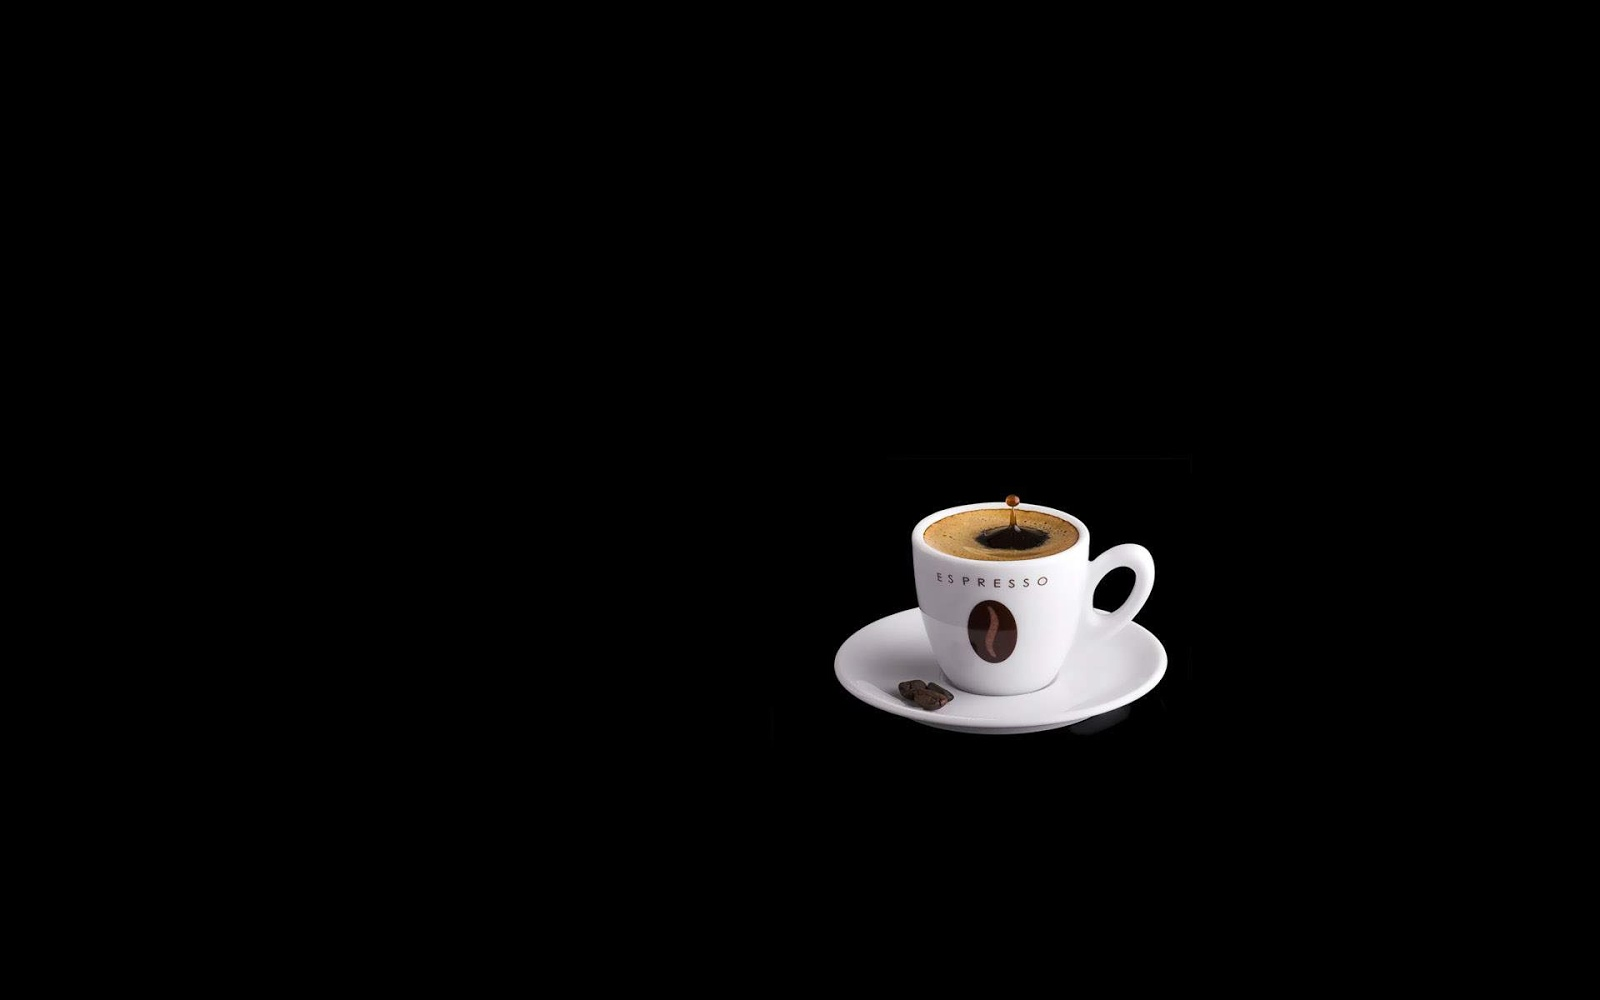 Black and White Wallpapers White Coffee Cup on Black 1600x1000